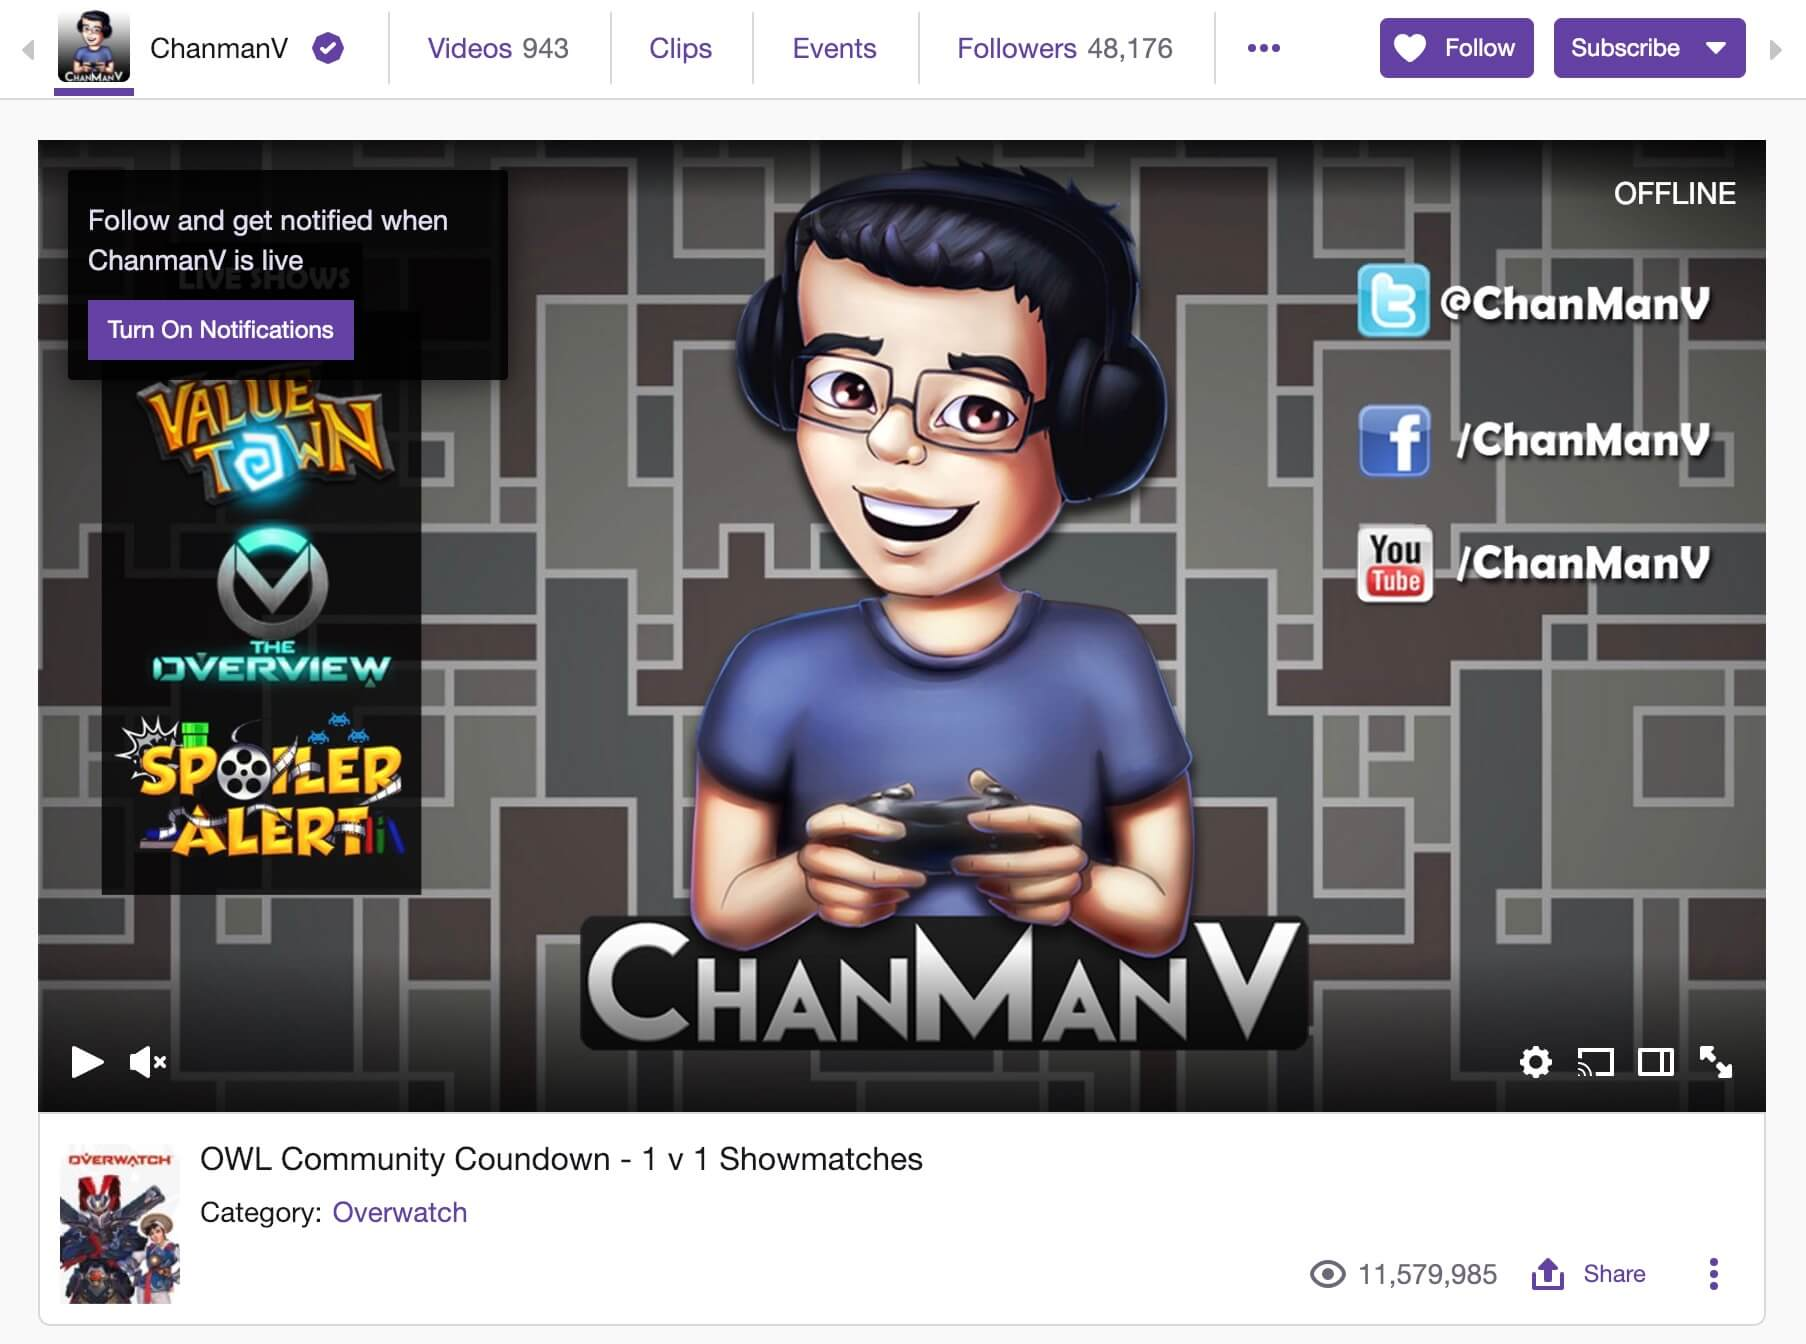 chanman twitch offline end screen